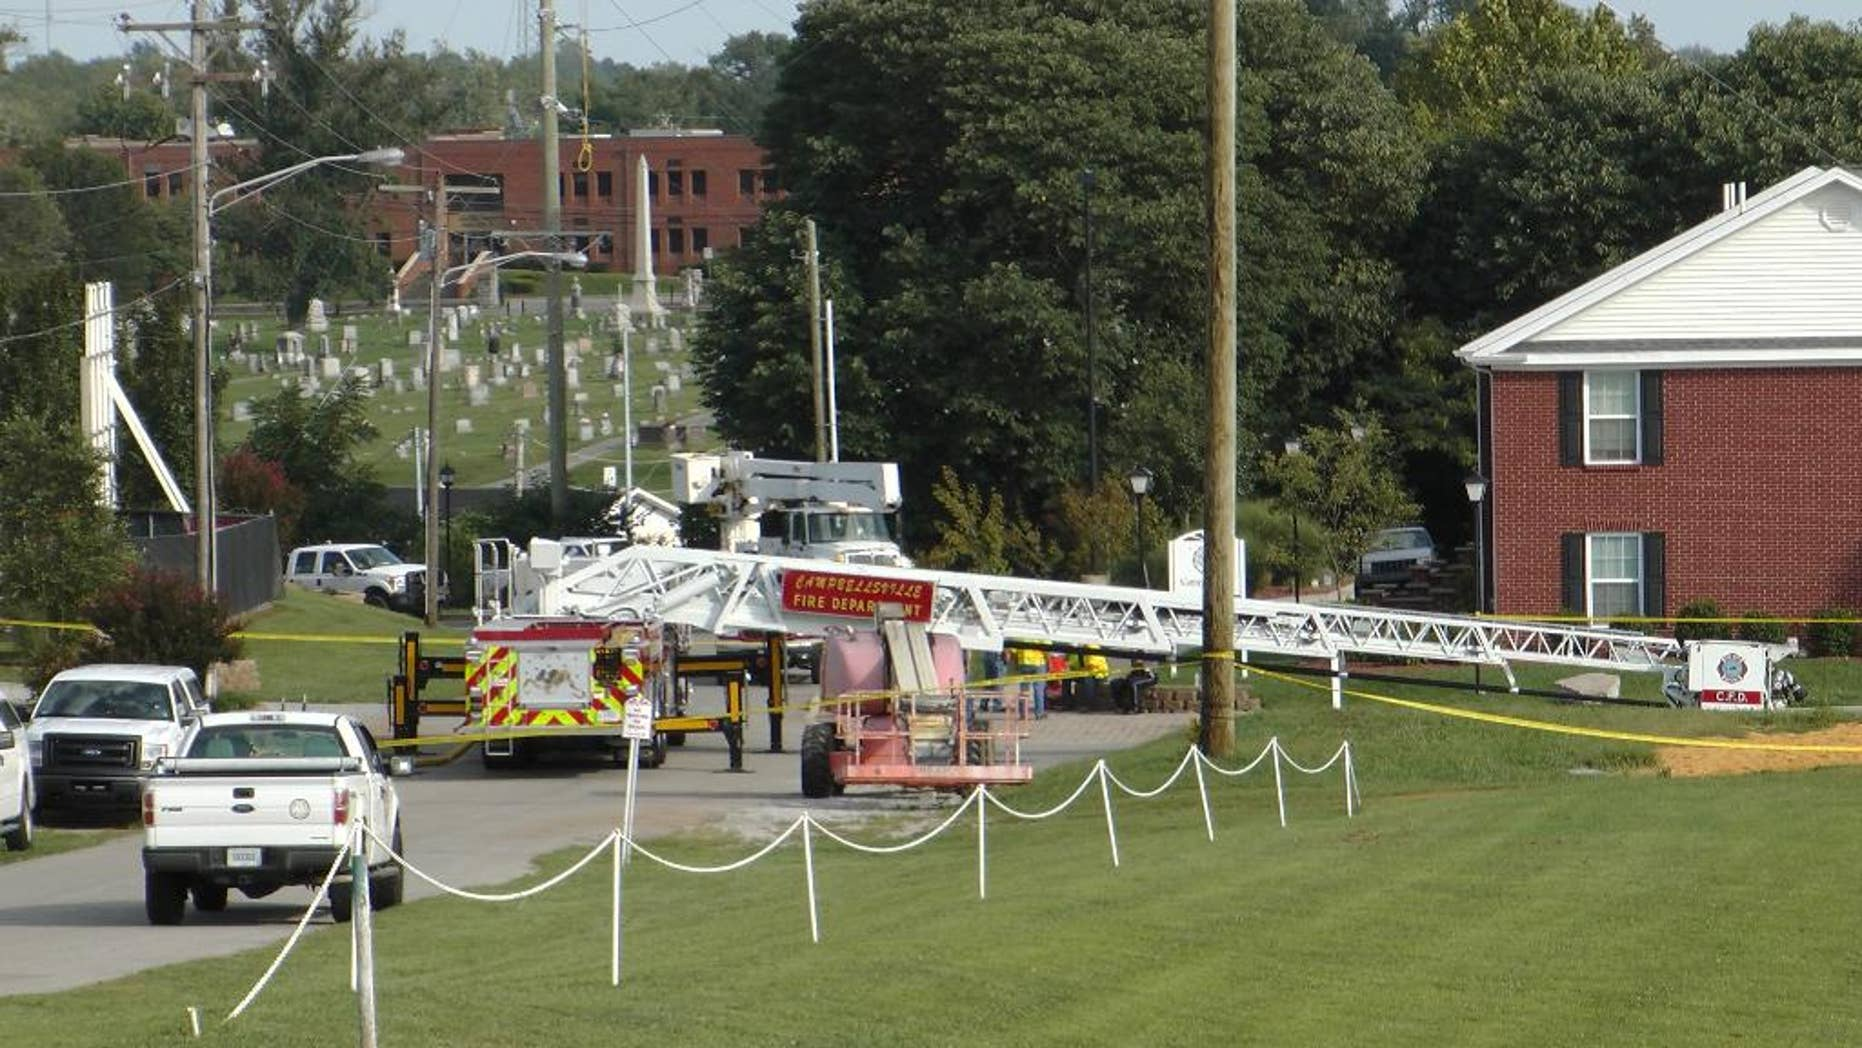 A Campbellsville Fire Department truck with the ladder extended remained at the scene where two firefighters were injured during an ice bucket challenge during a fundraiser for ALS on Thursday, Aug. 21, 2014, in Campbellsville, Ky. Officials say the ladder got too close to a power line and electricity traveled to the ladder, electrocuting the firefighters. (AP Photo/Dylan Lovan)